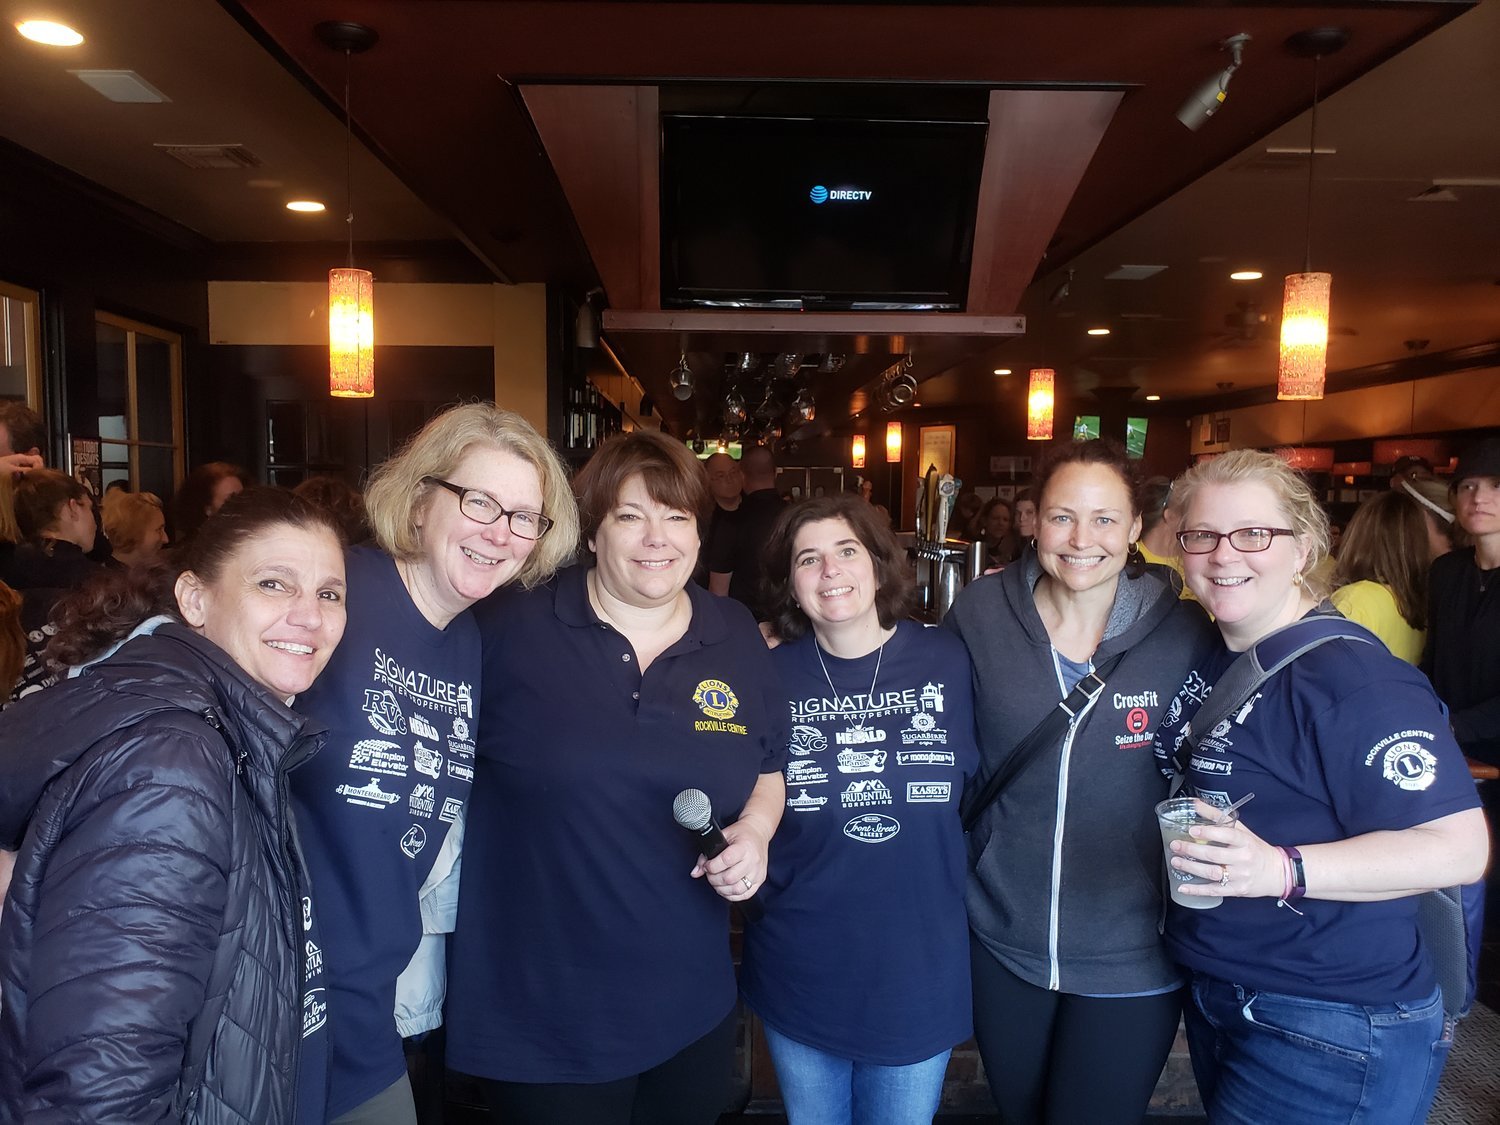 Event organizer Michelle Sewell, third from left, joined winners Jenny Costaro, far left, Kerinne Tollefsen, Carrie Alfano, Tracey Cheesman and Jeanine Cerrabone.